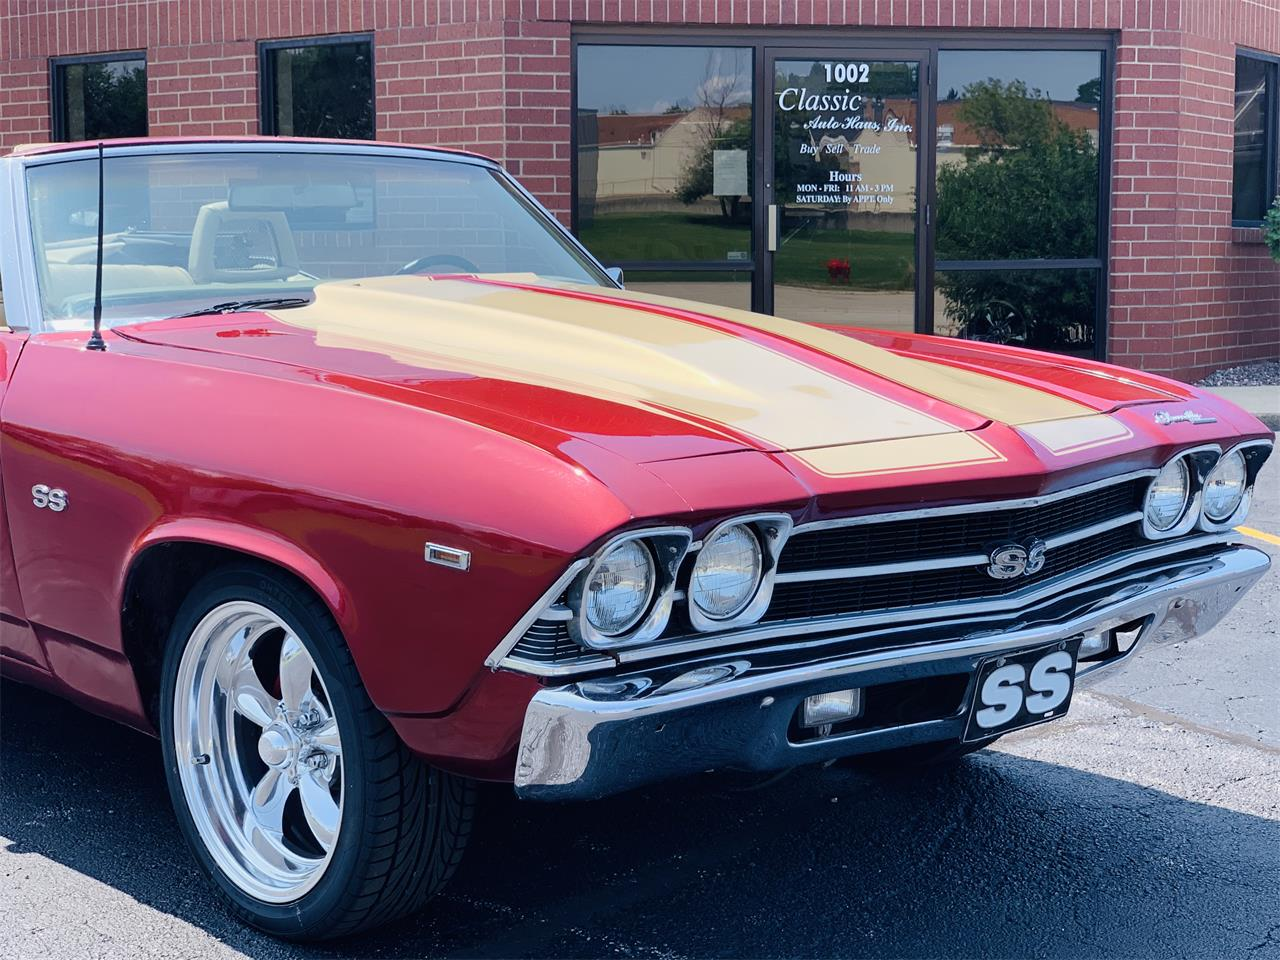 Large Picture of Classic 1969 Chevrolet Chevelle located in Geneva Illinois - $36,995.00 - PVBX